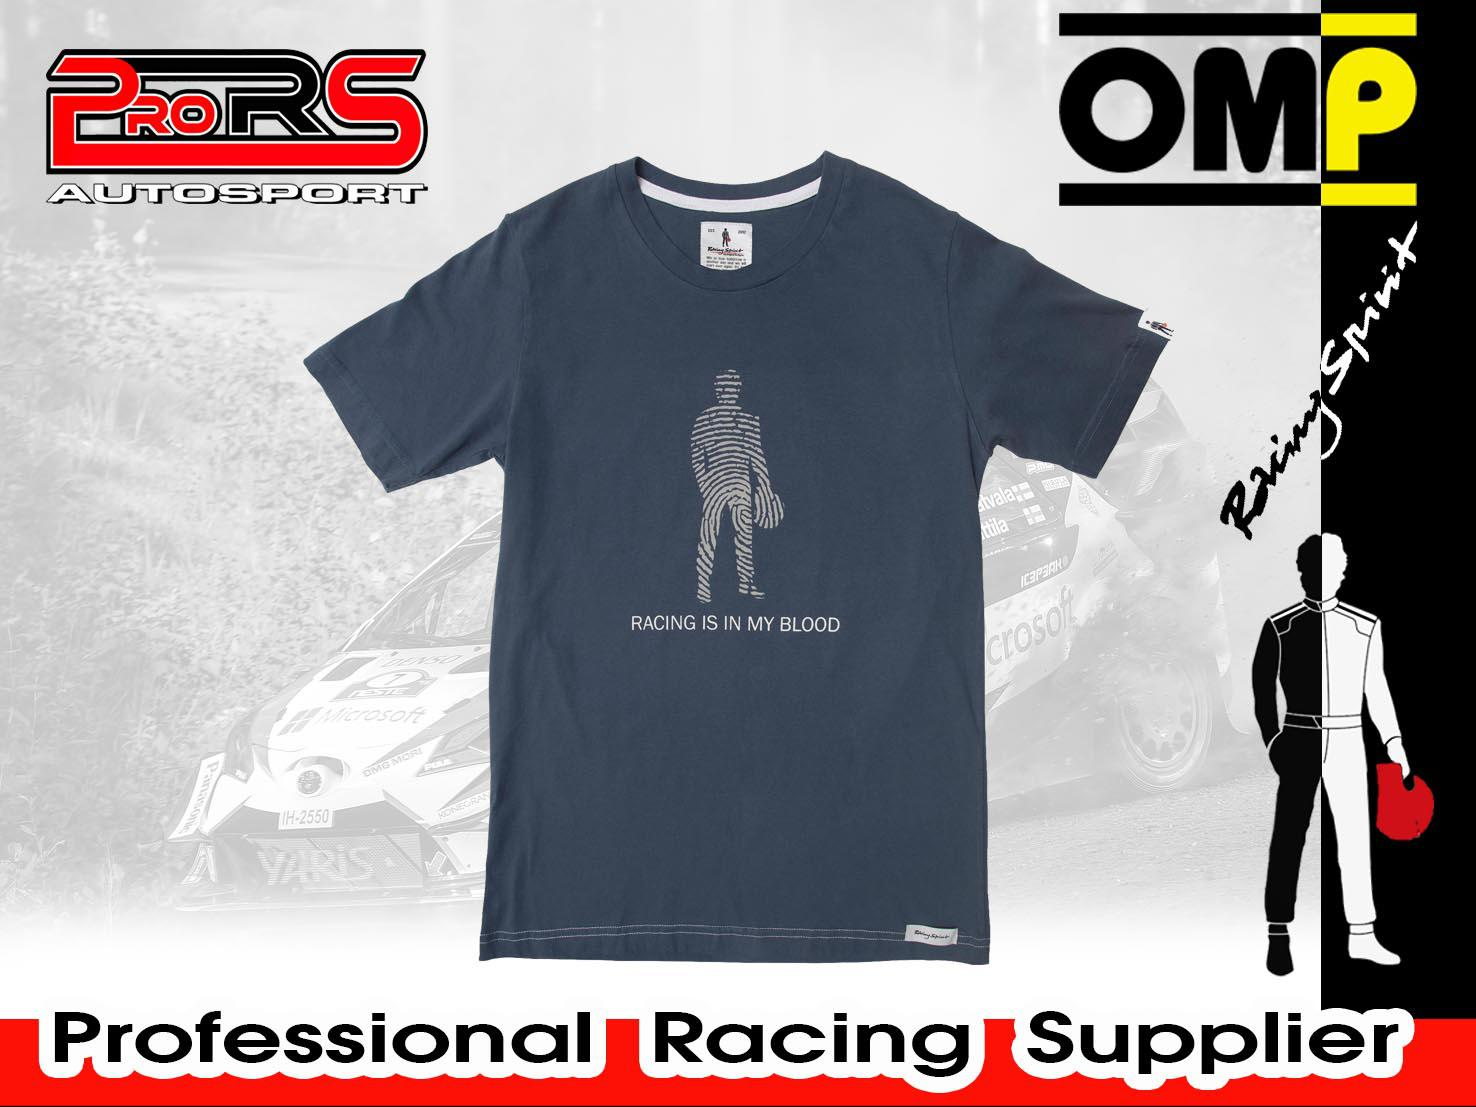 Camiseta modelo RACING IS IN MY BLOOD